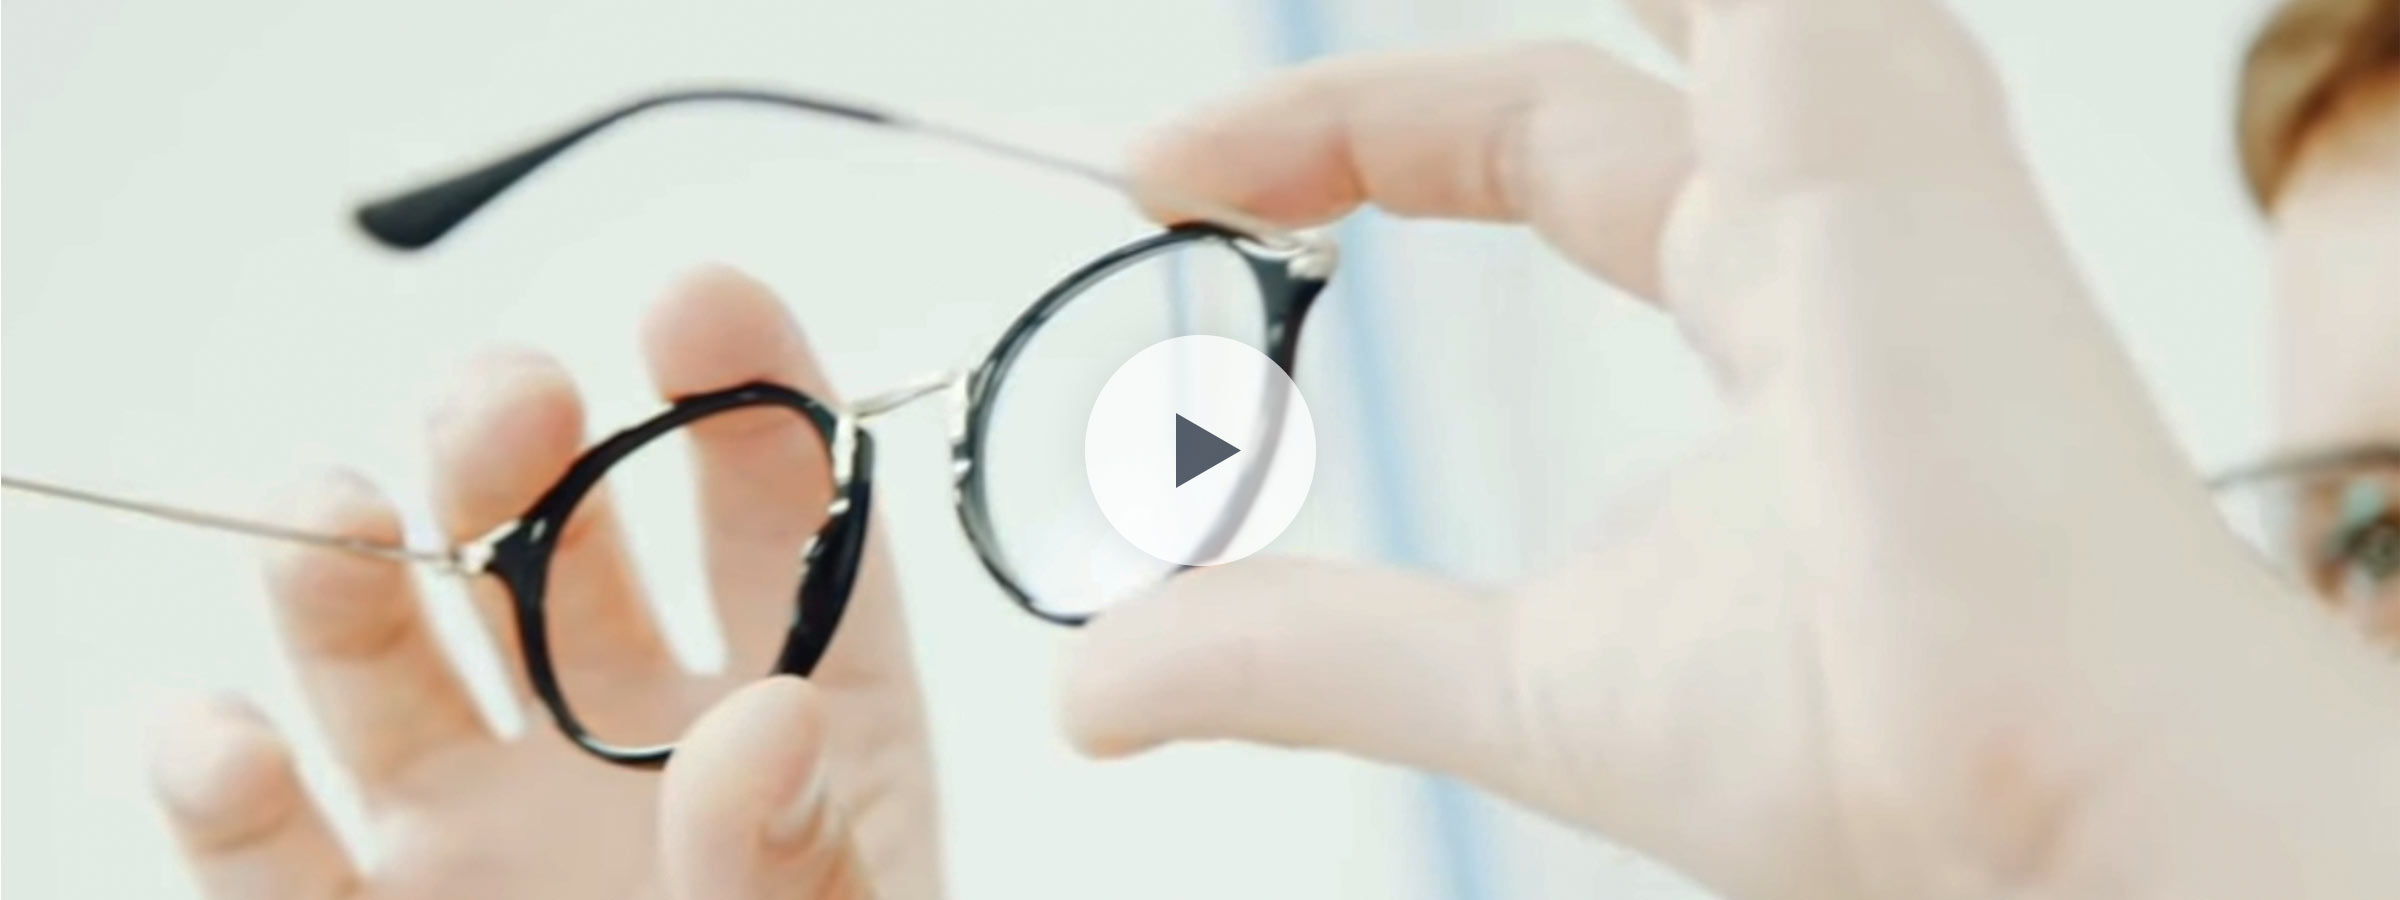 A pair of glasses being held up for inspection